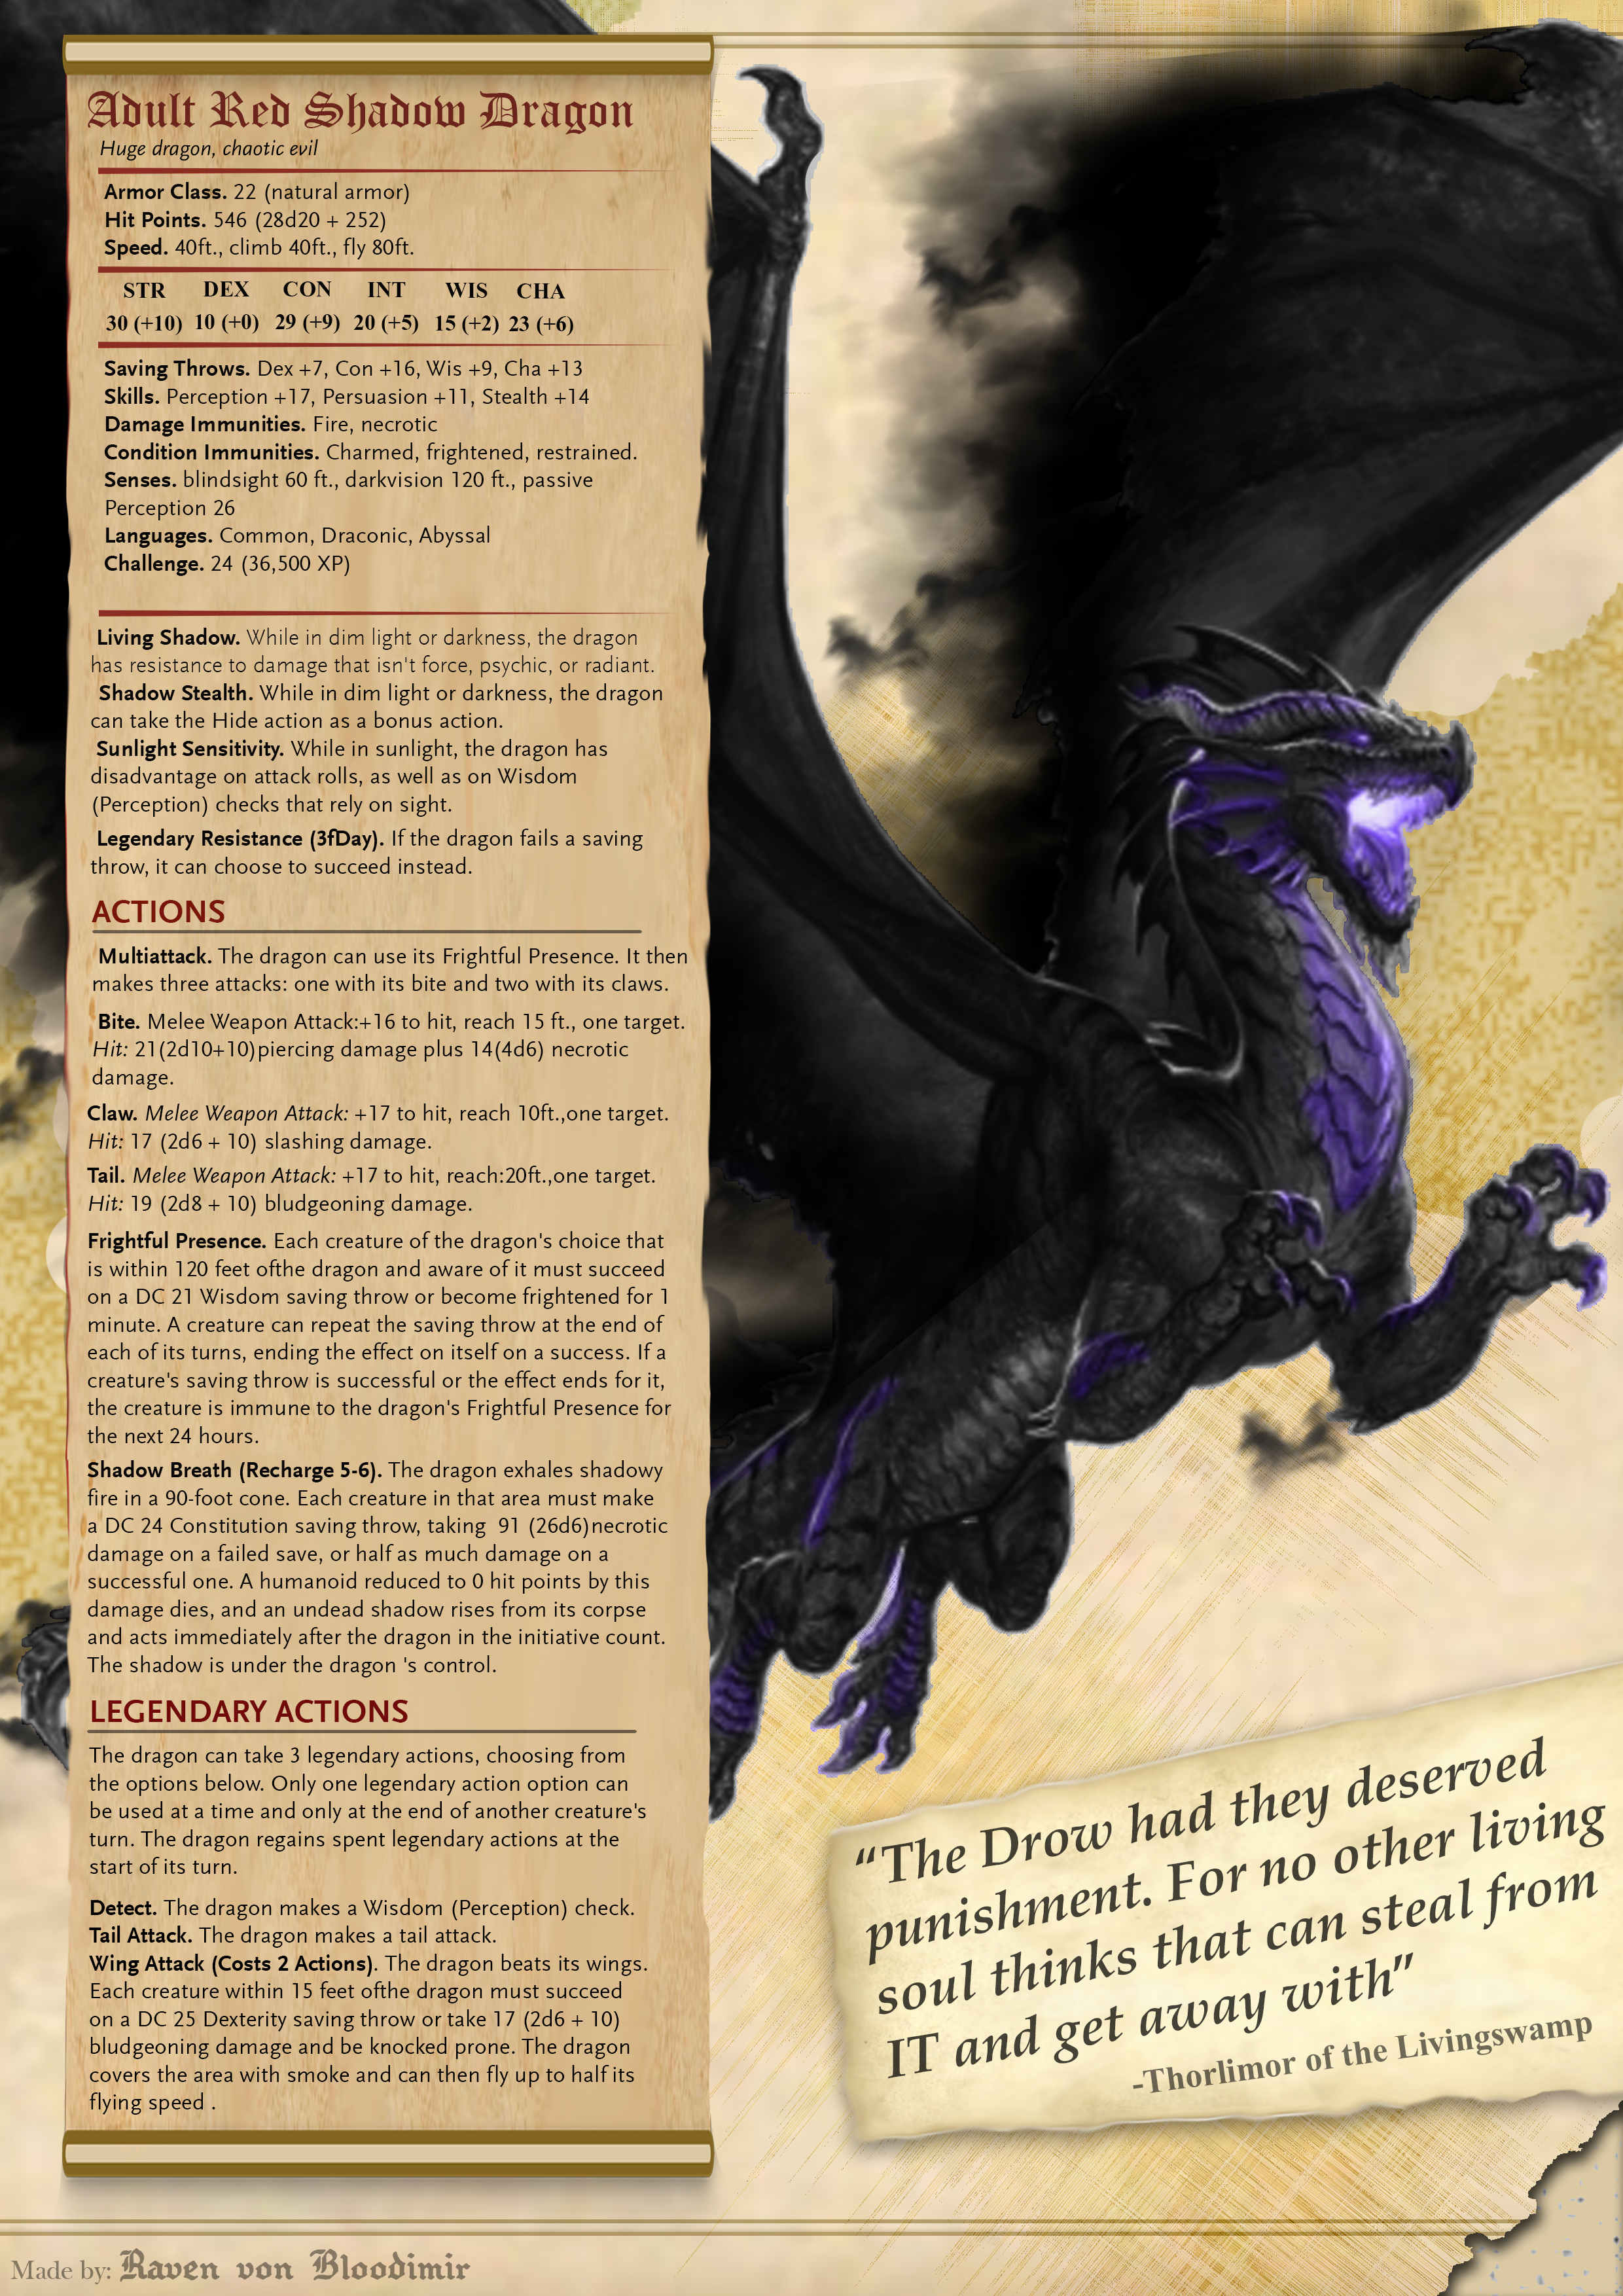 Adult Red Shadow Dragon 5e Dnd By Ravenvonbloodimir On